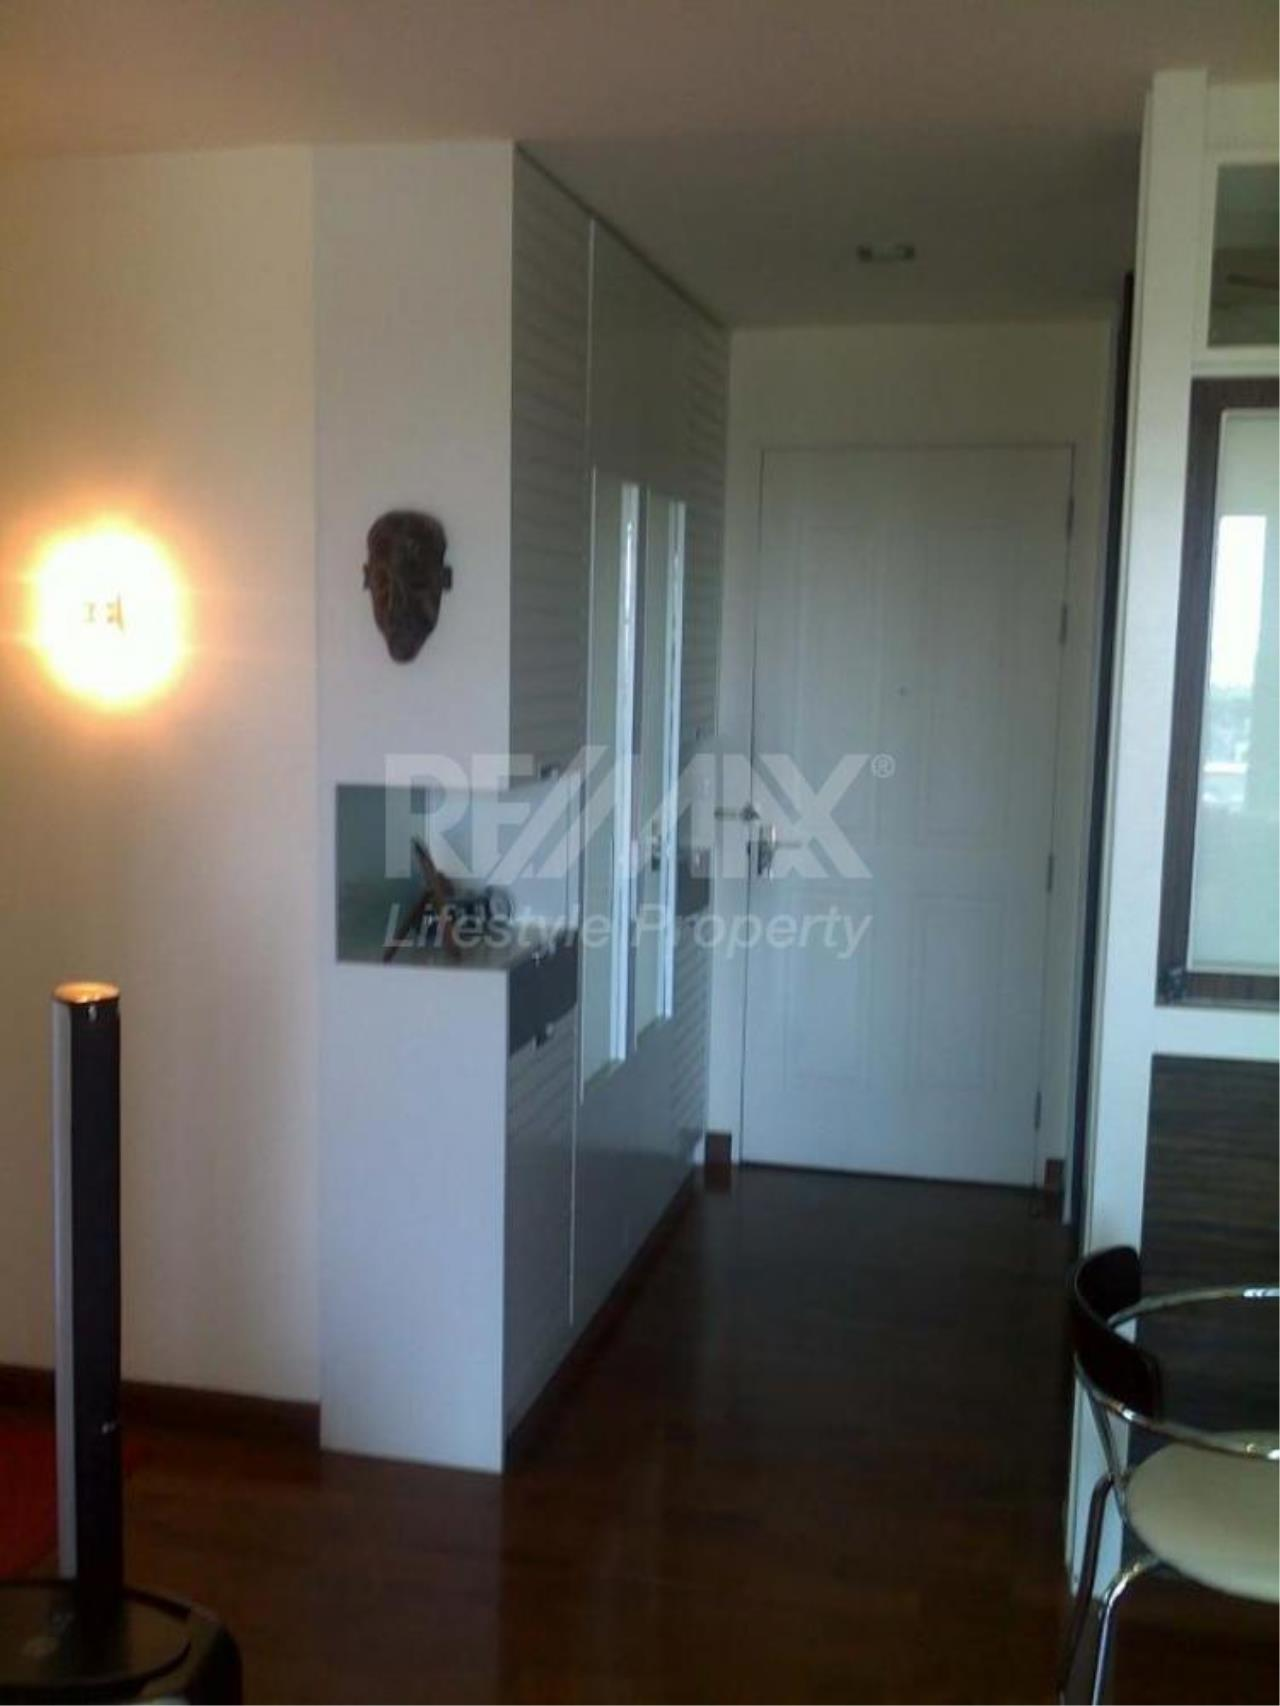 RE/MAX LifeStyle Property Agency's Sukhumvit Plus 9